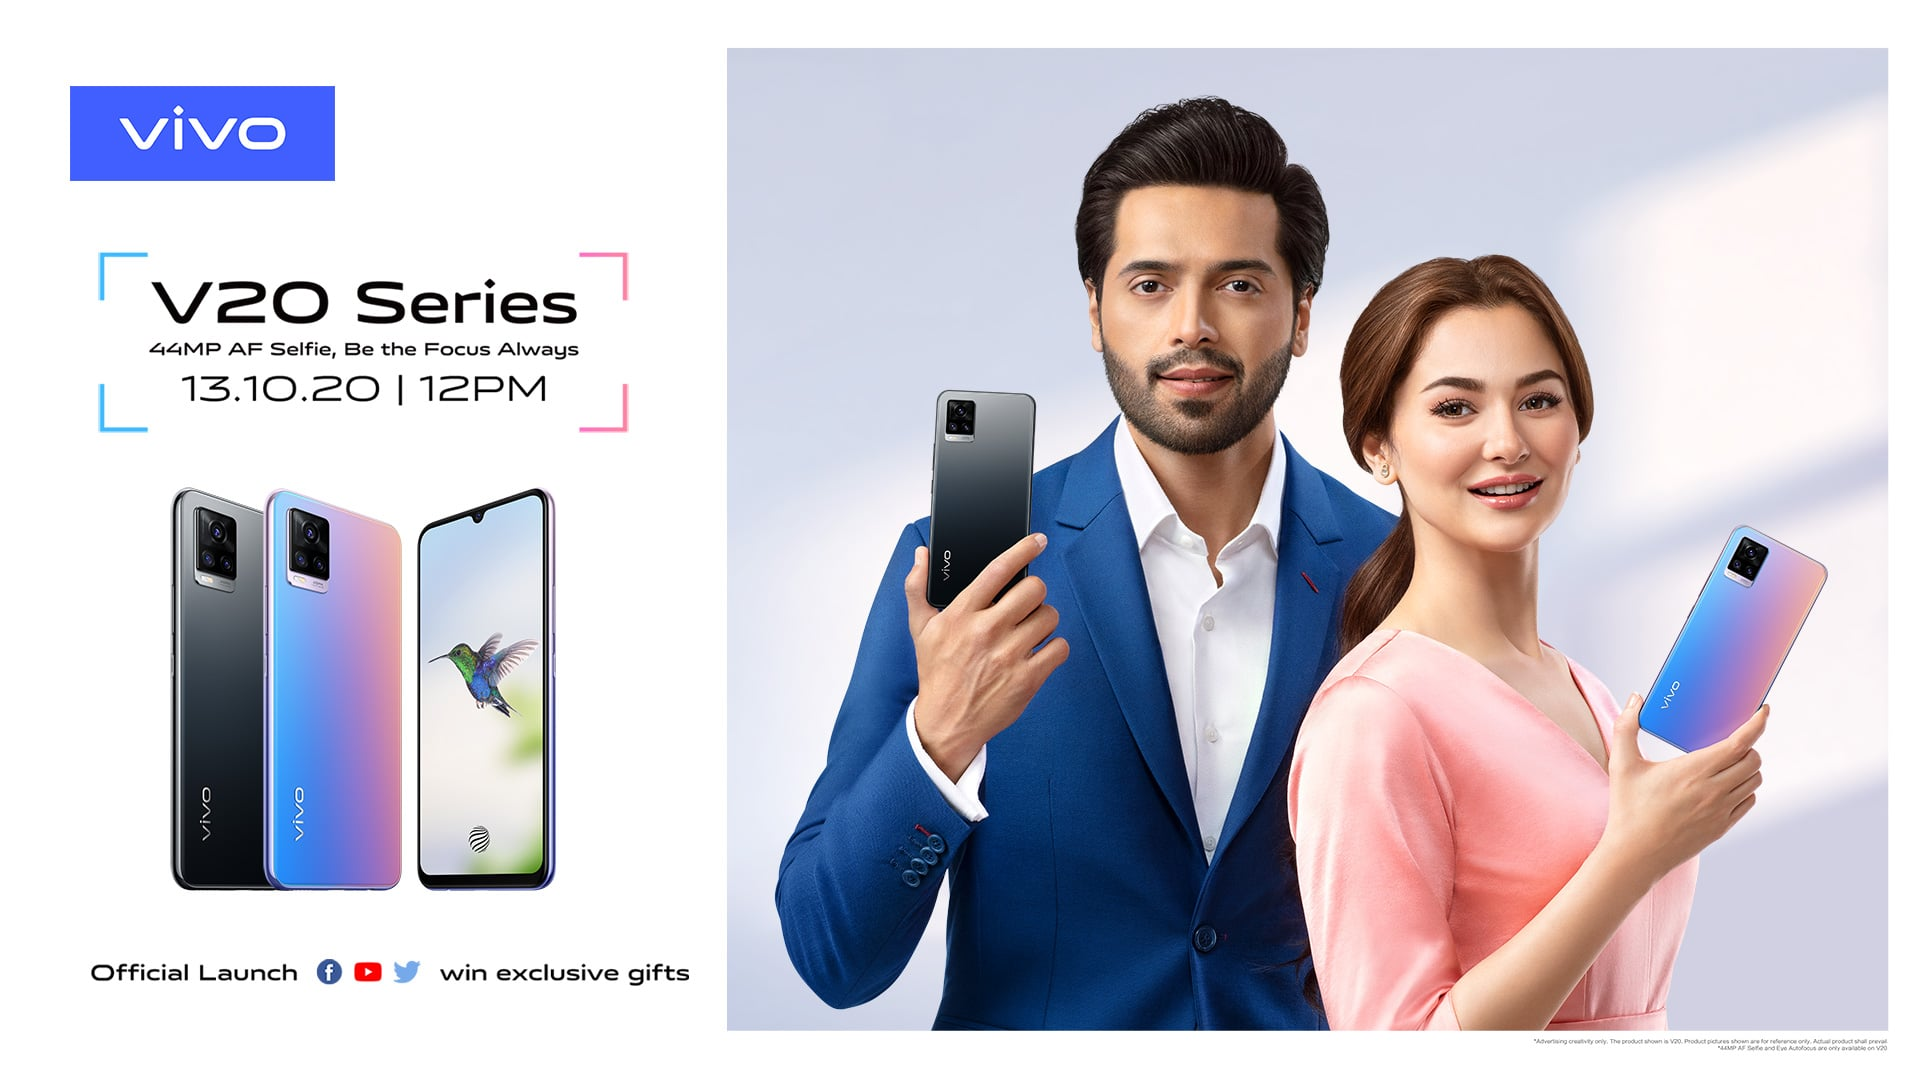 vivo-V20-with-44MP-Eye-Autofocus-to-be-Launched-in-Pakistan-on-October-13th